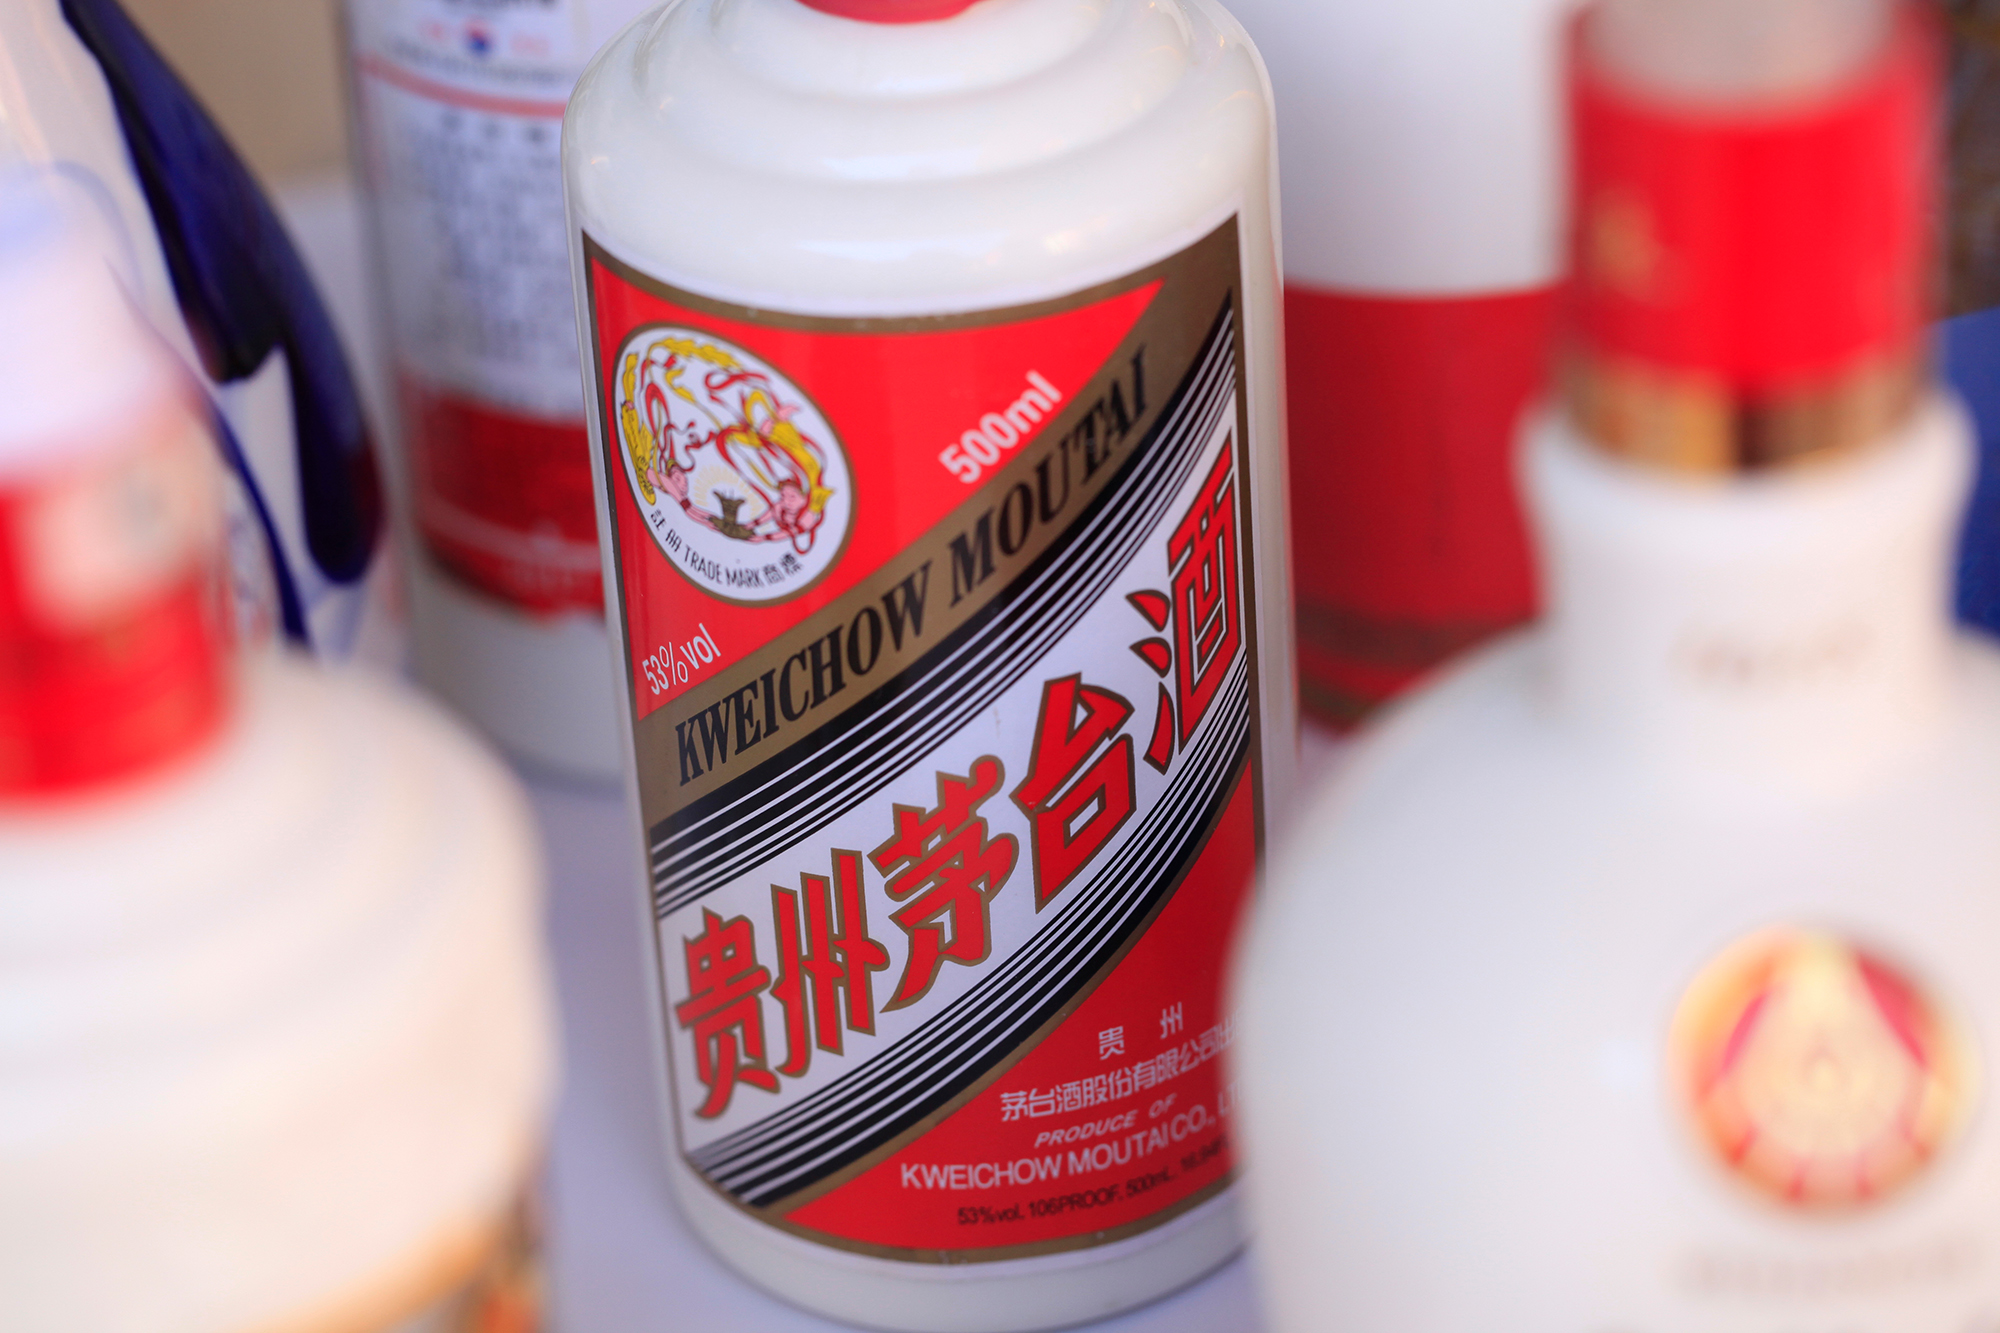 It's 53% alcohol and tastes like fire. Here's how this liquor brand took over China